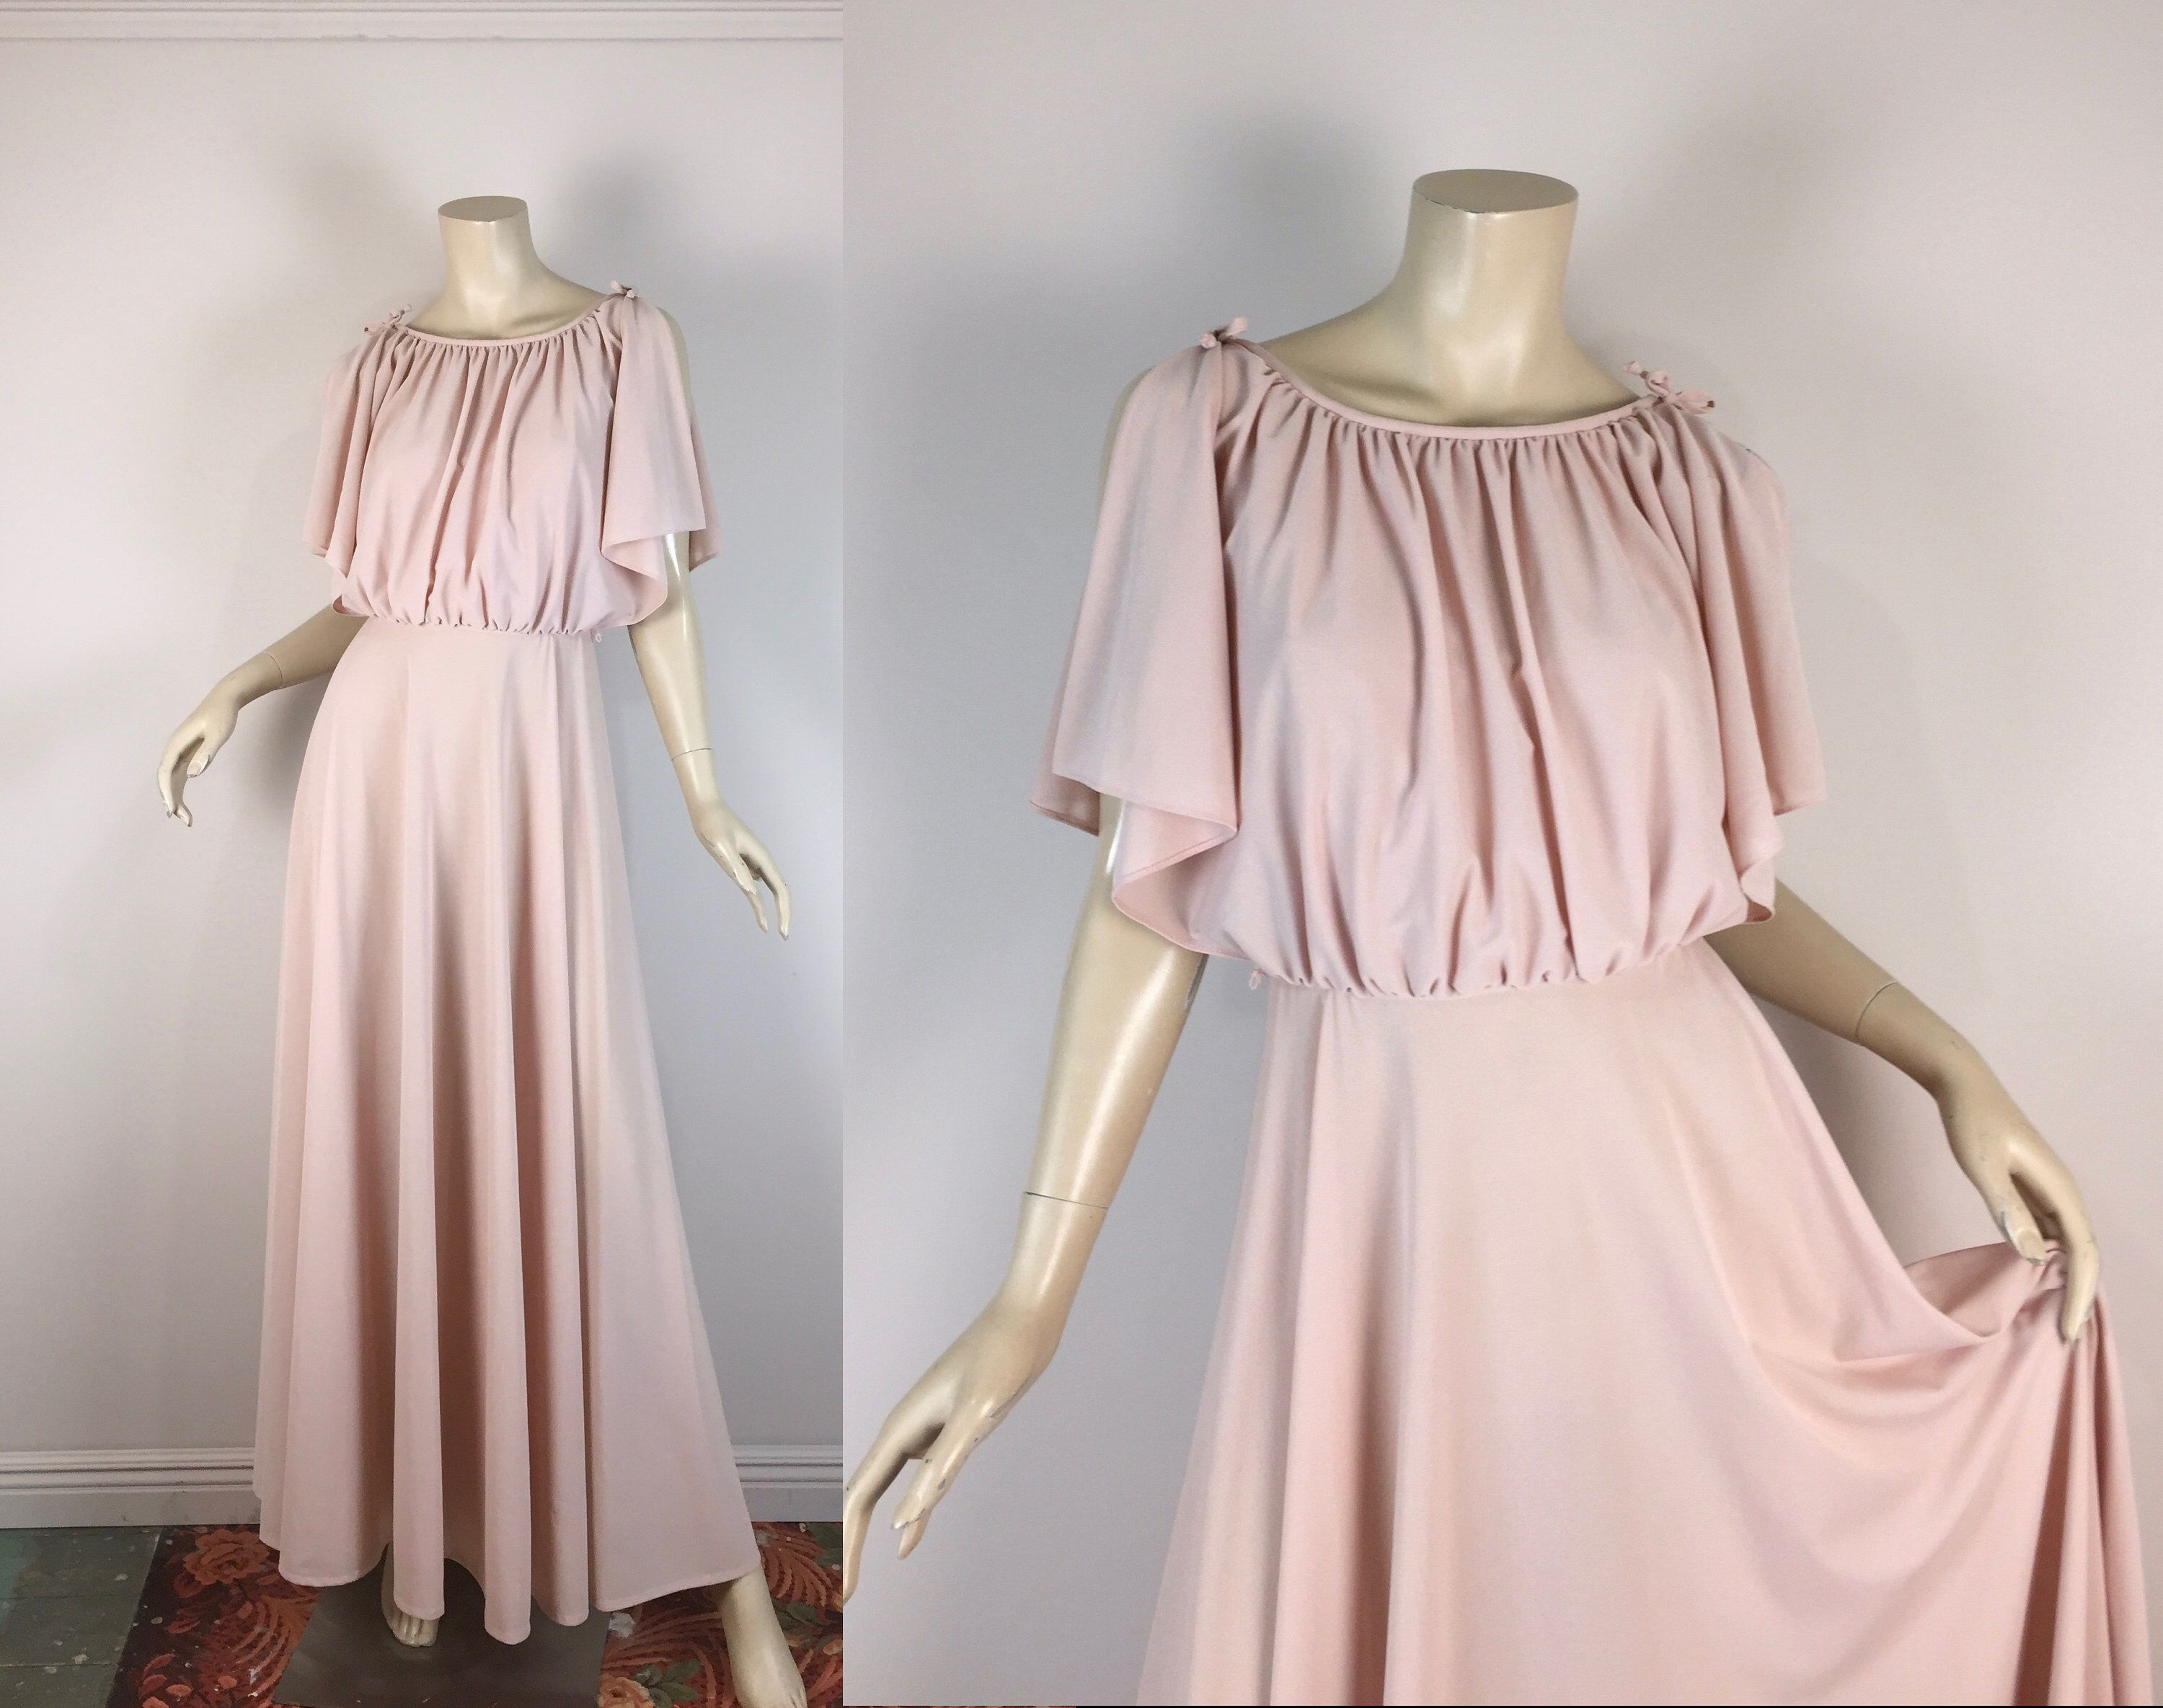 70s Disco Dress In Blush Pink 1970s Goddess Grecian Prom Dress 1970s Studio 54 Small By Reluctantdamsel On 70s Fashion Dresses Goddess Prom Dress Disco Dress [ 2369 x 3000 Pixel ]